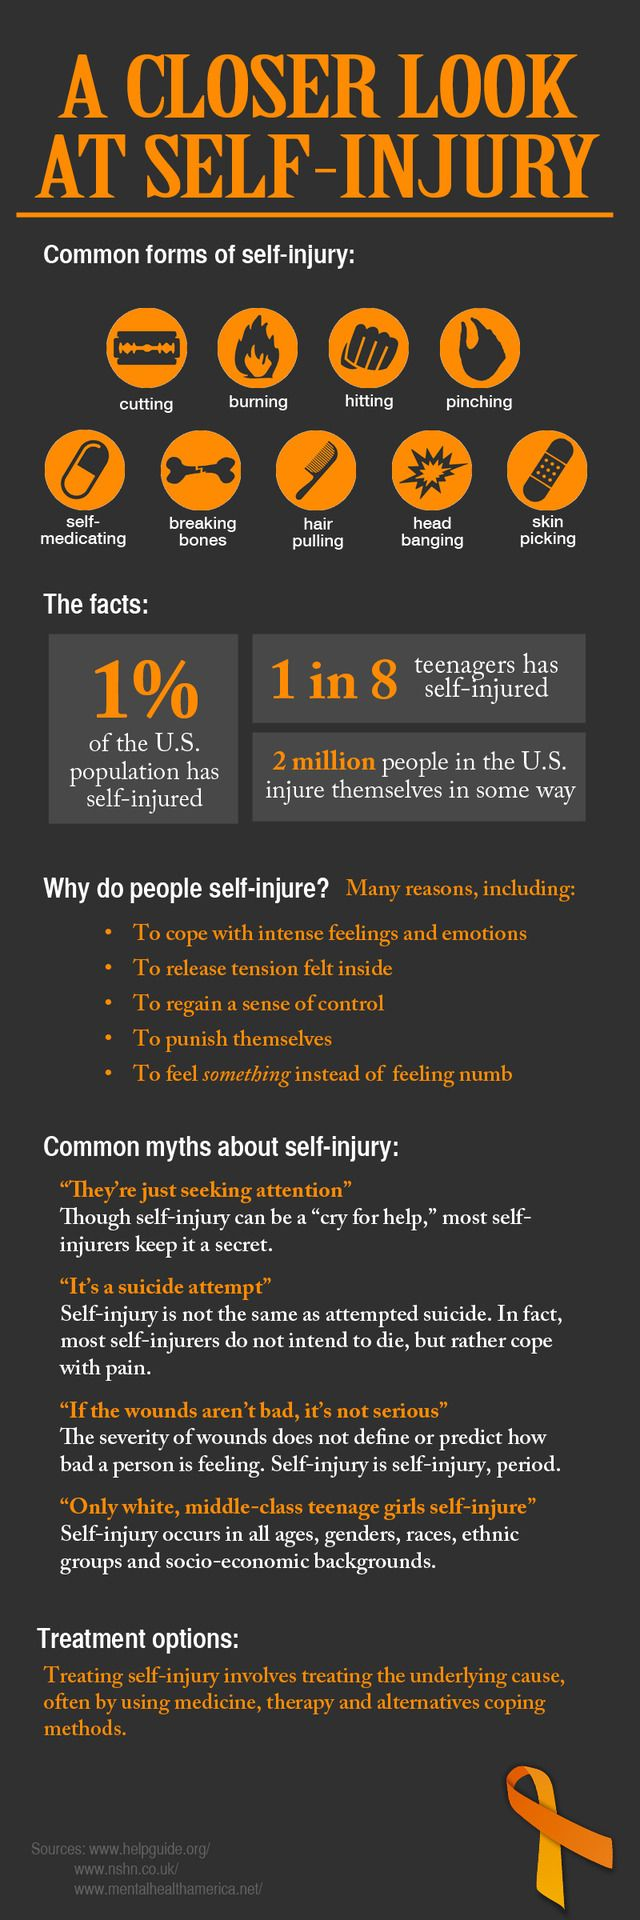 self-harm and self-injury at a glance